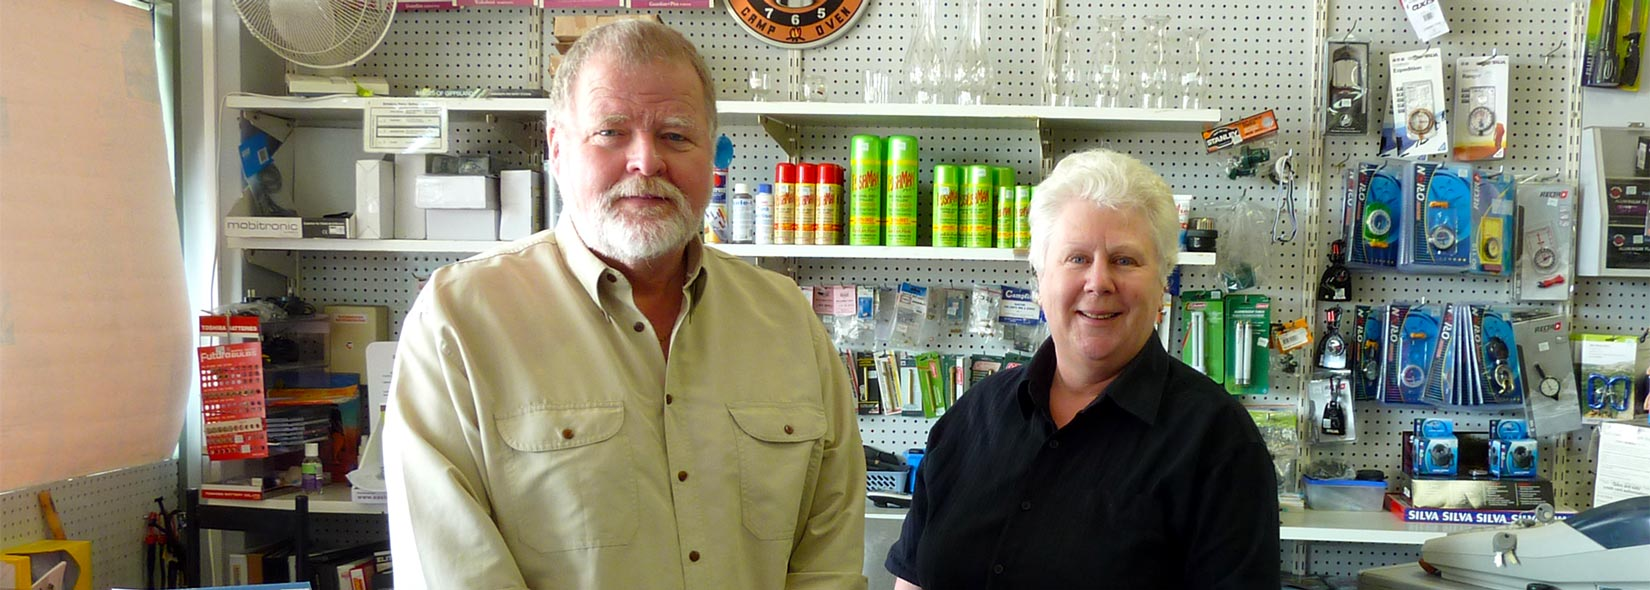 David Neale and Wendy Brownrigg, Bairnsdale Camping and Outdoors